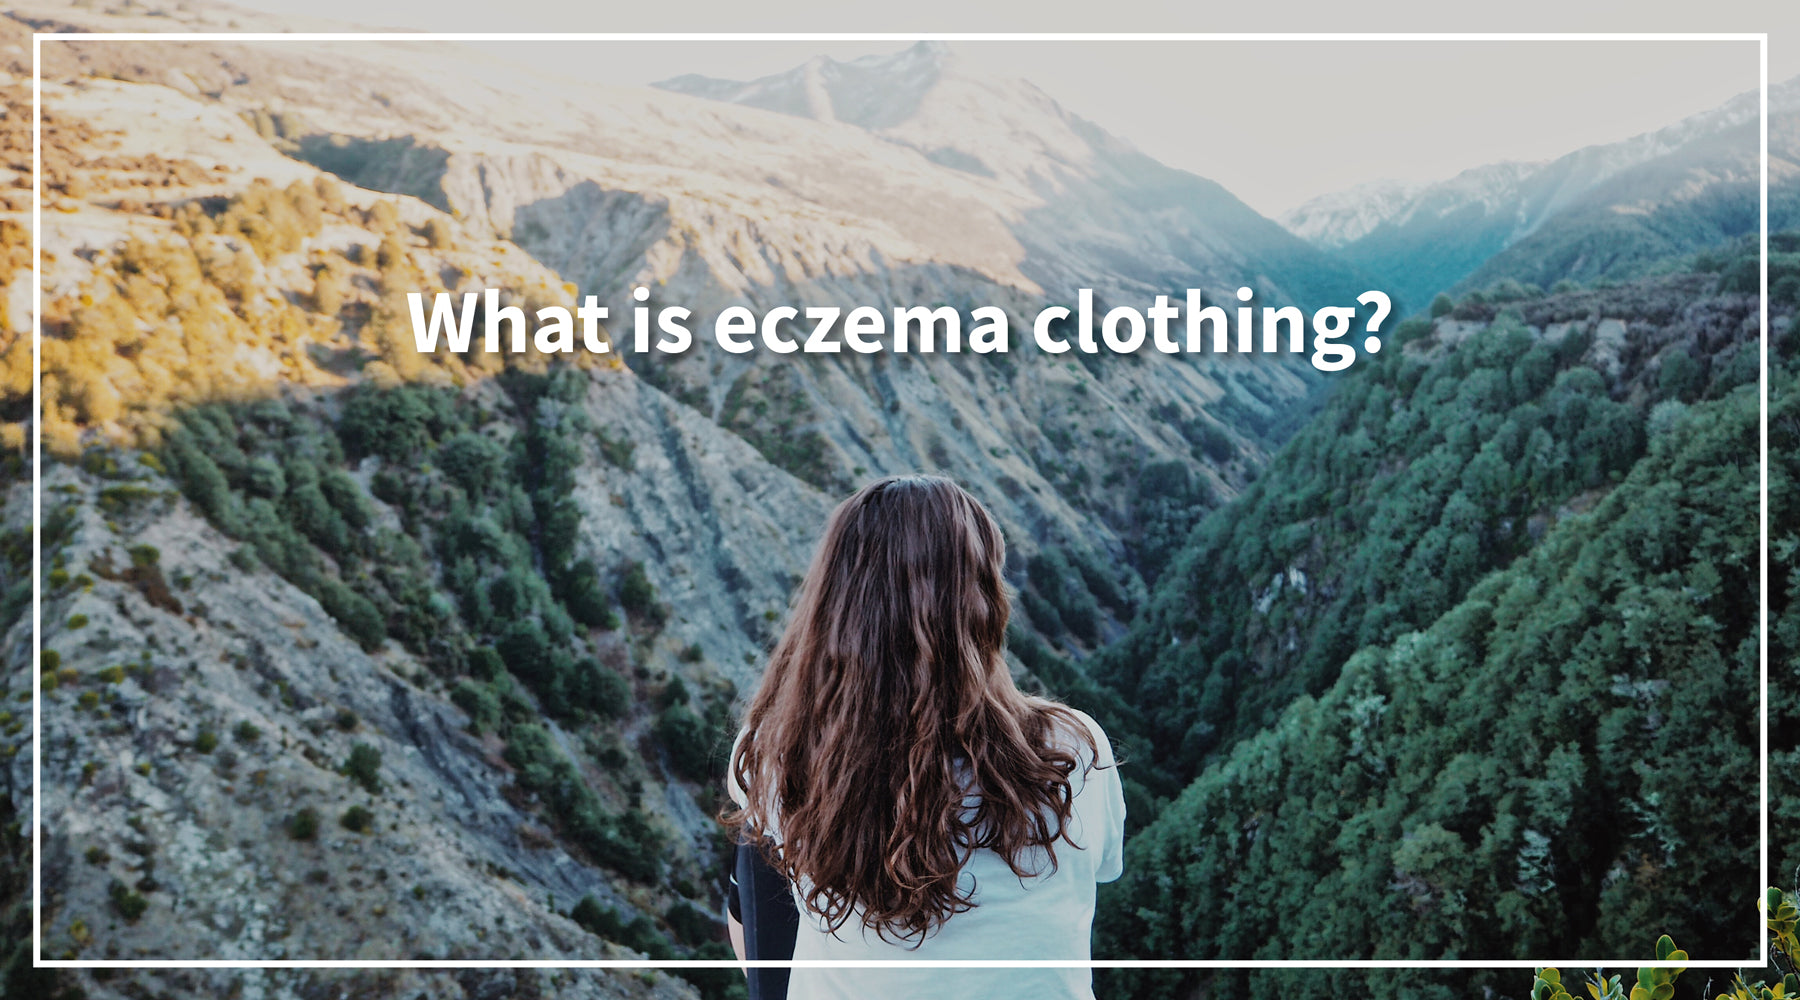 Solbari blog: What is eczema clothing?